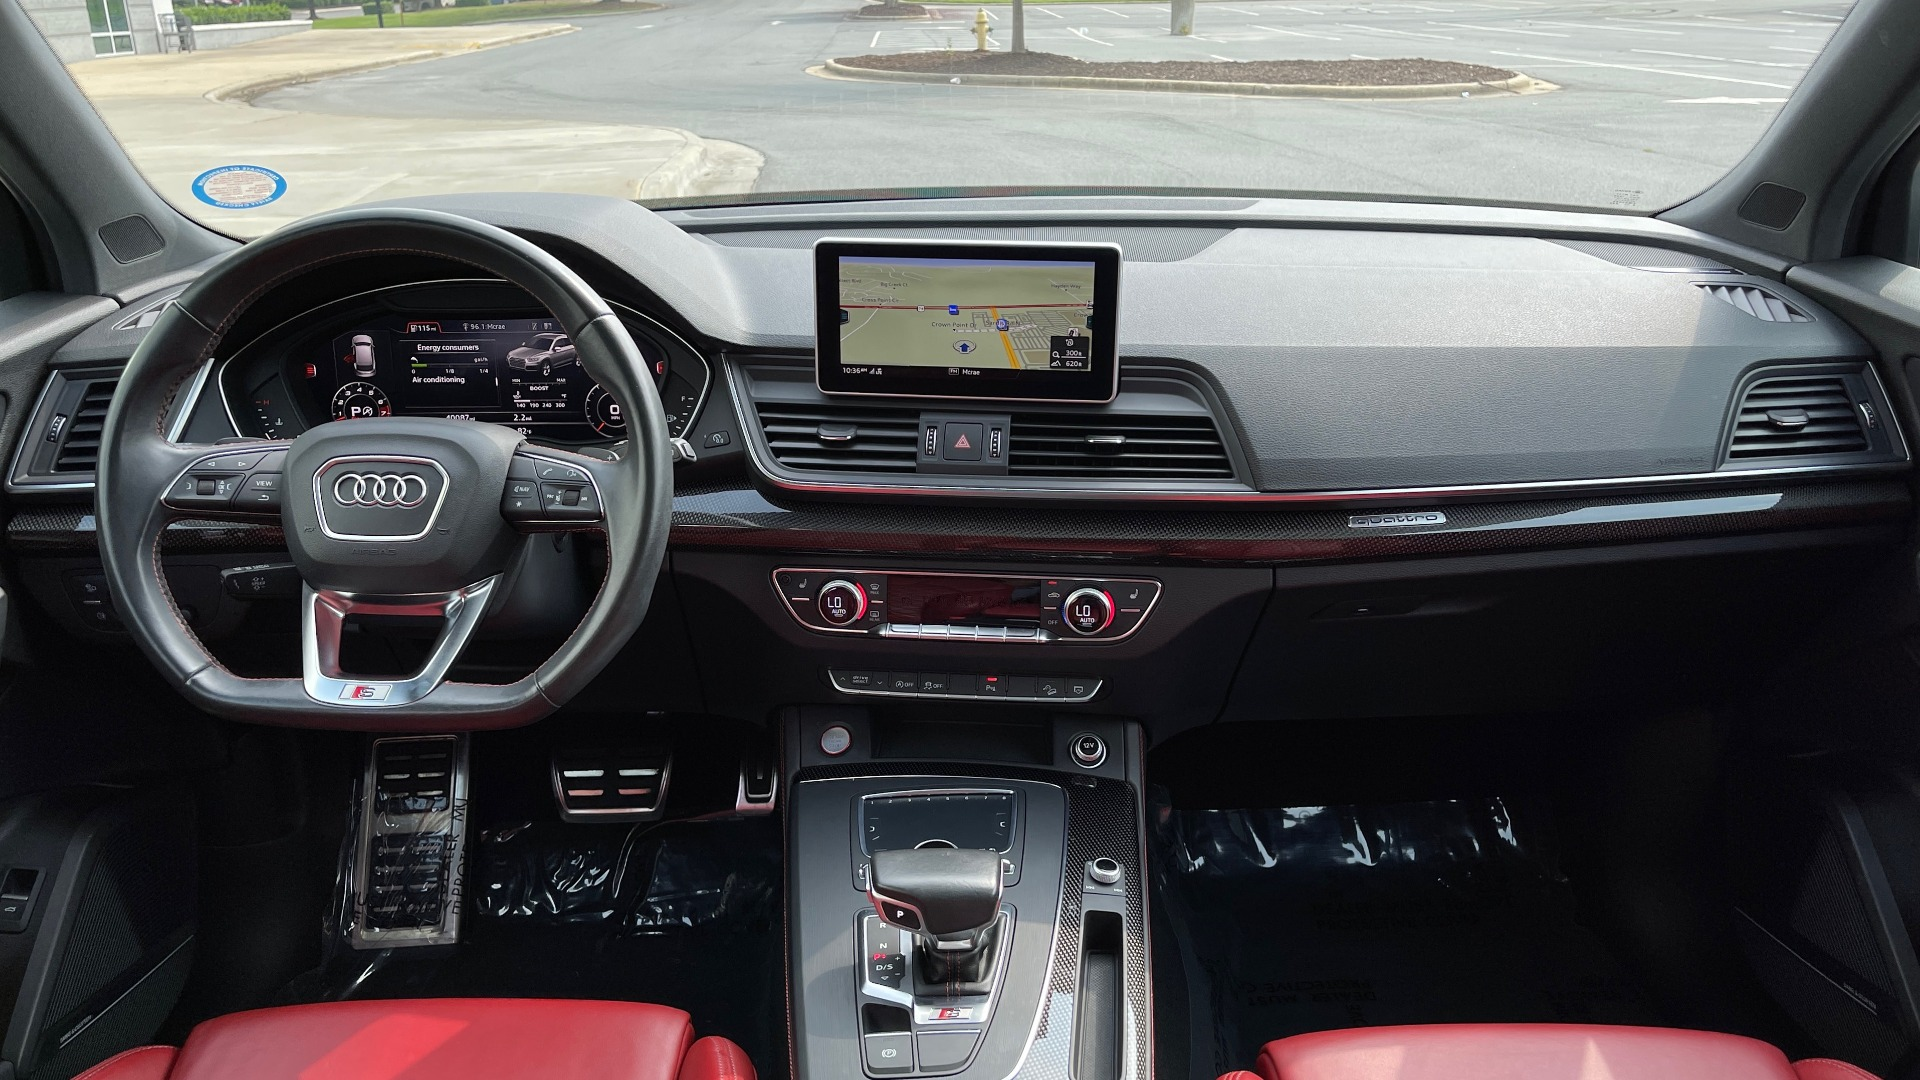 Used 2018 Audi SQ5 PREMIUM PLUS / S-SPORT / NAV / B&O SND / SUNROOF / REARVIEW for sale $43,995 at Formula Imports in Charlotte NC 28227 60